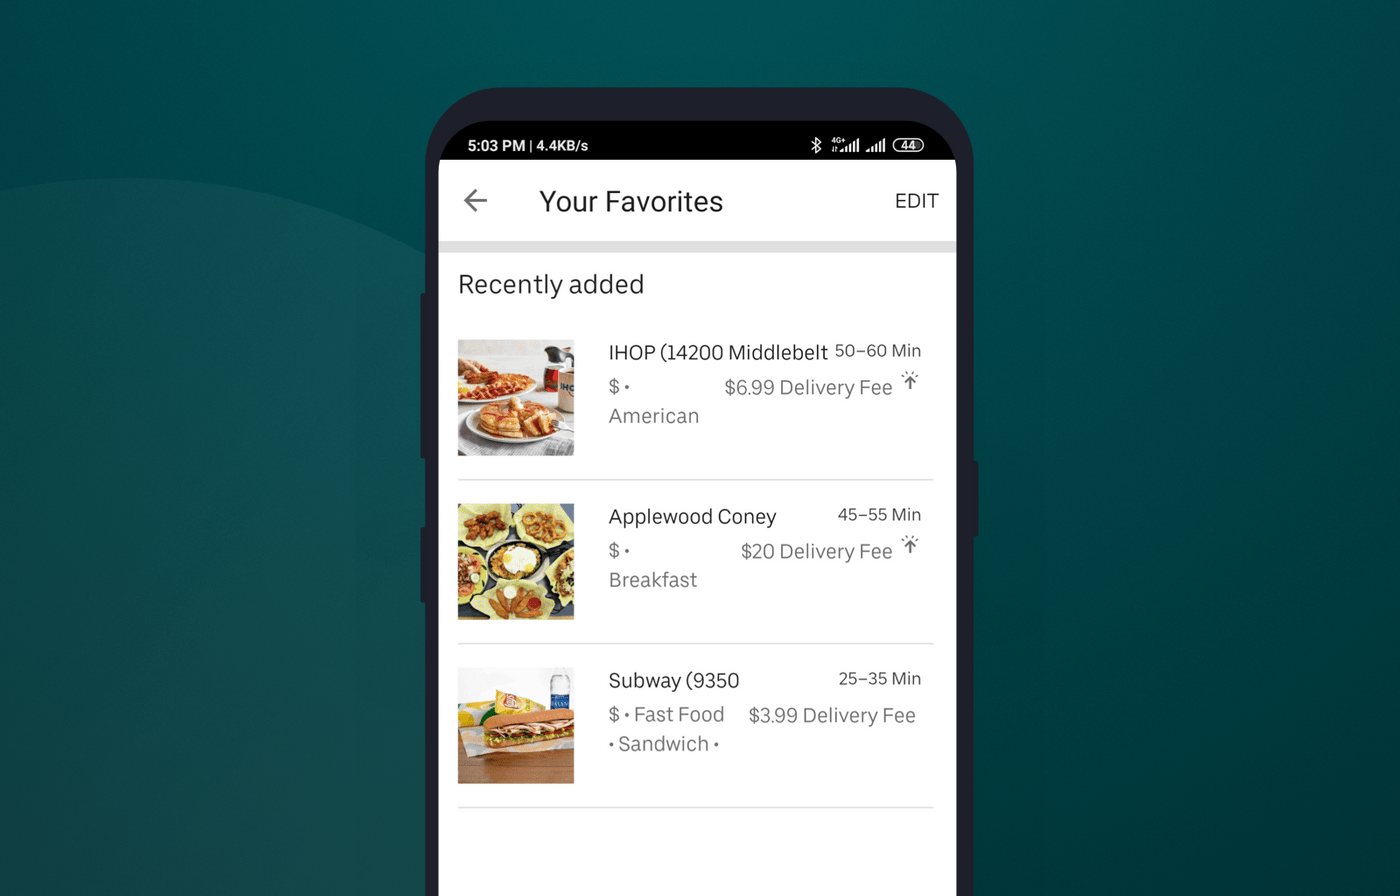 How bookmarks look like in Uber Eats